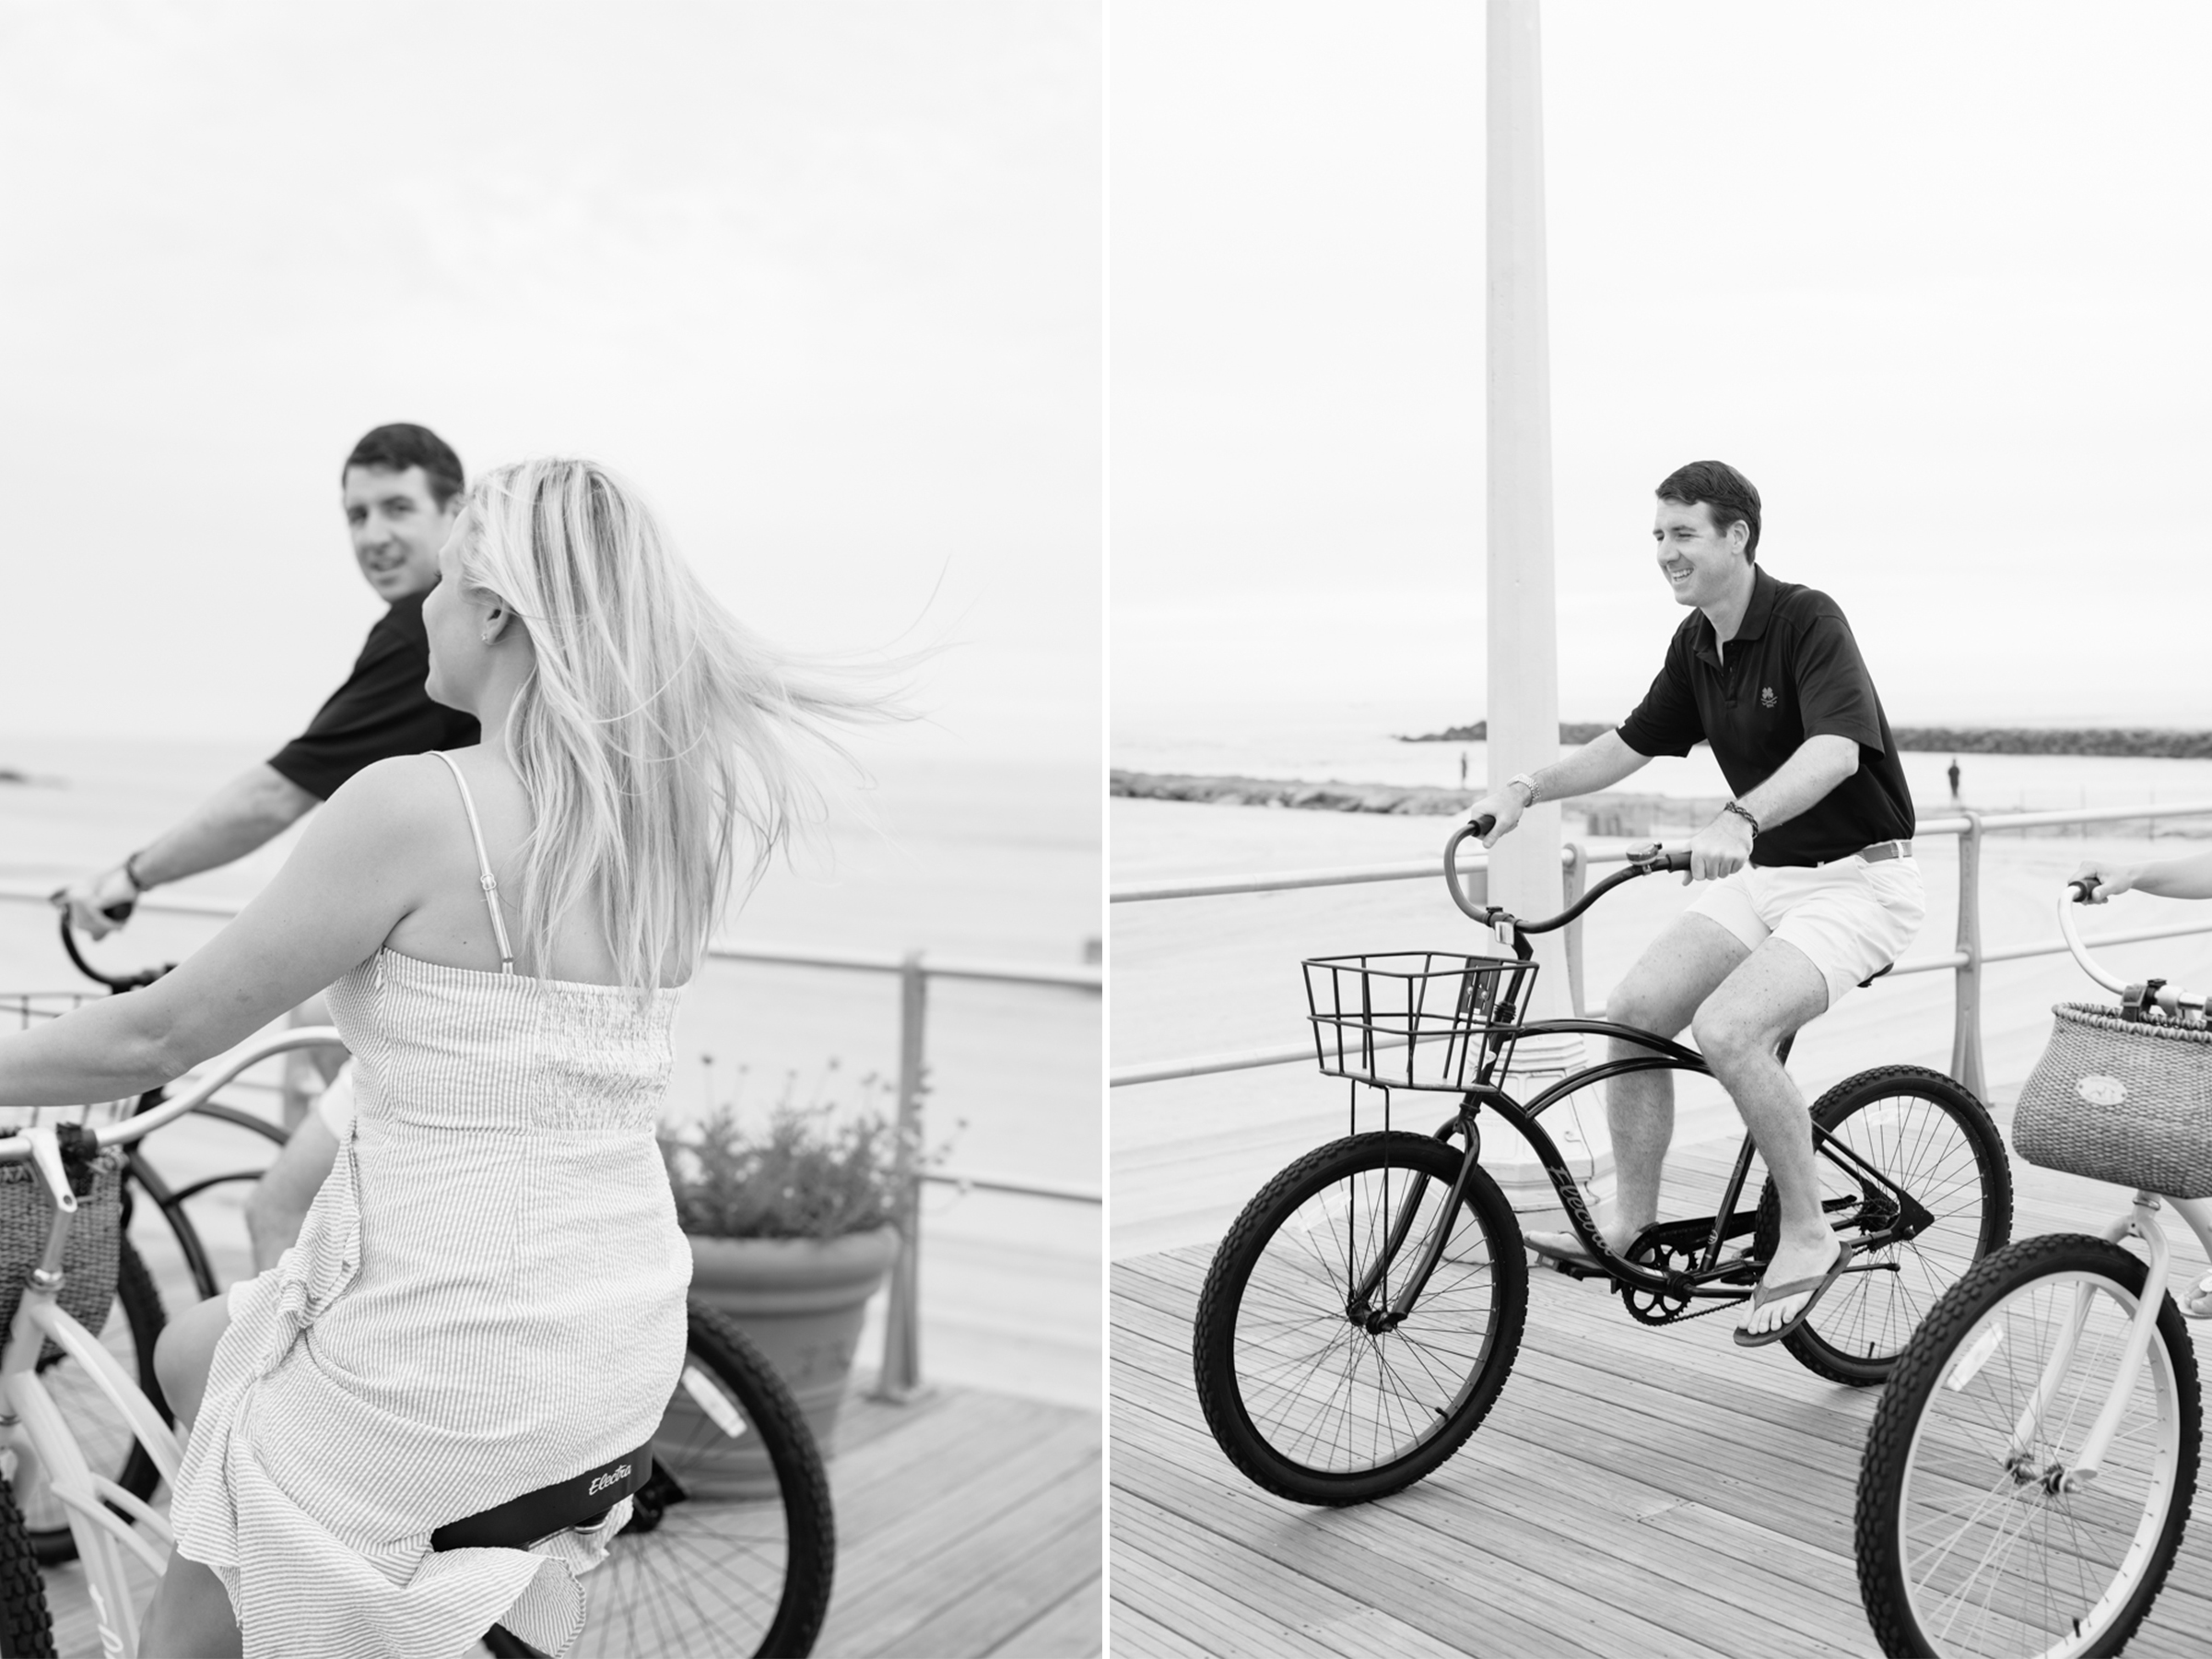 Angela+Troy- Sunrise Beach Engagement Session-Riding Bicycles on Boardwalk- Avon By The Sea New Jersey- Olivia Christina Photo-3.JPG